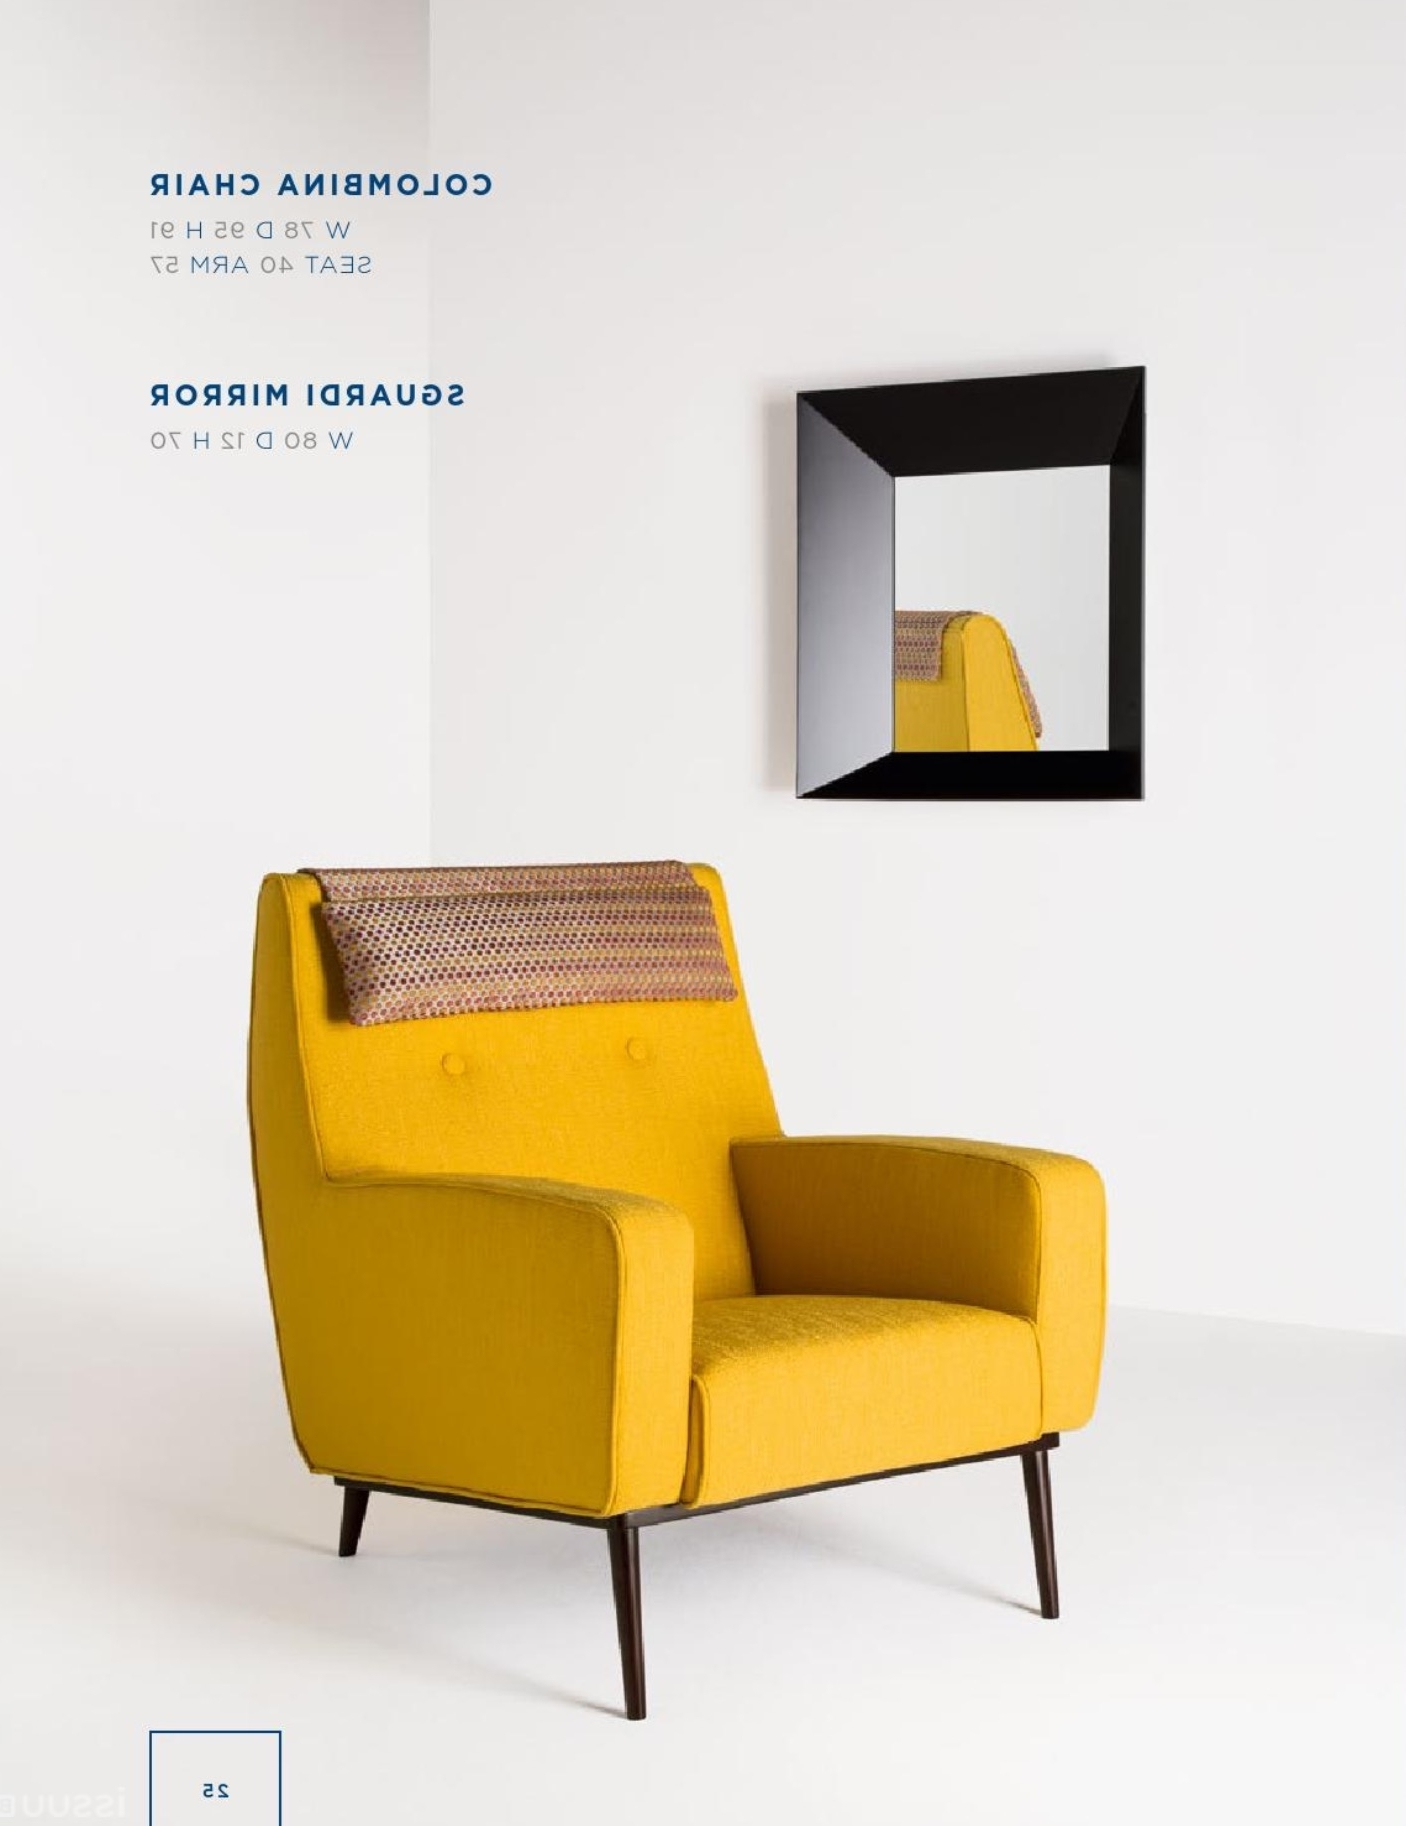 Small Sofas And Chairs Throughout Latest Rubelli Casa – Colombina Chair Sguardi Mirror (View 12 of 15)